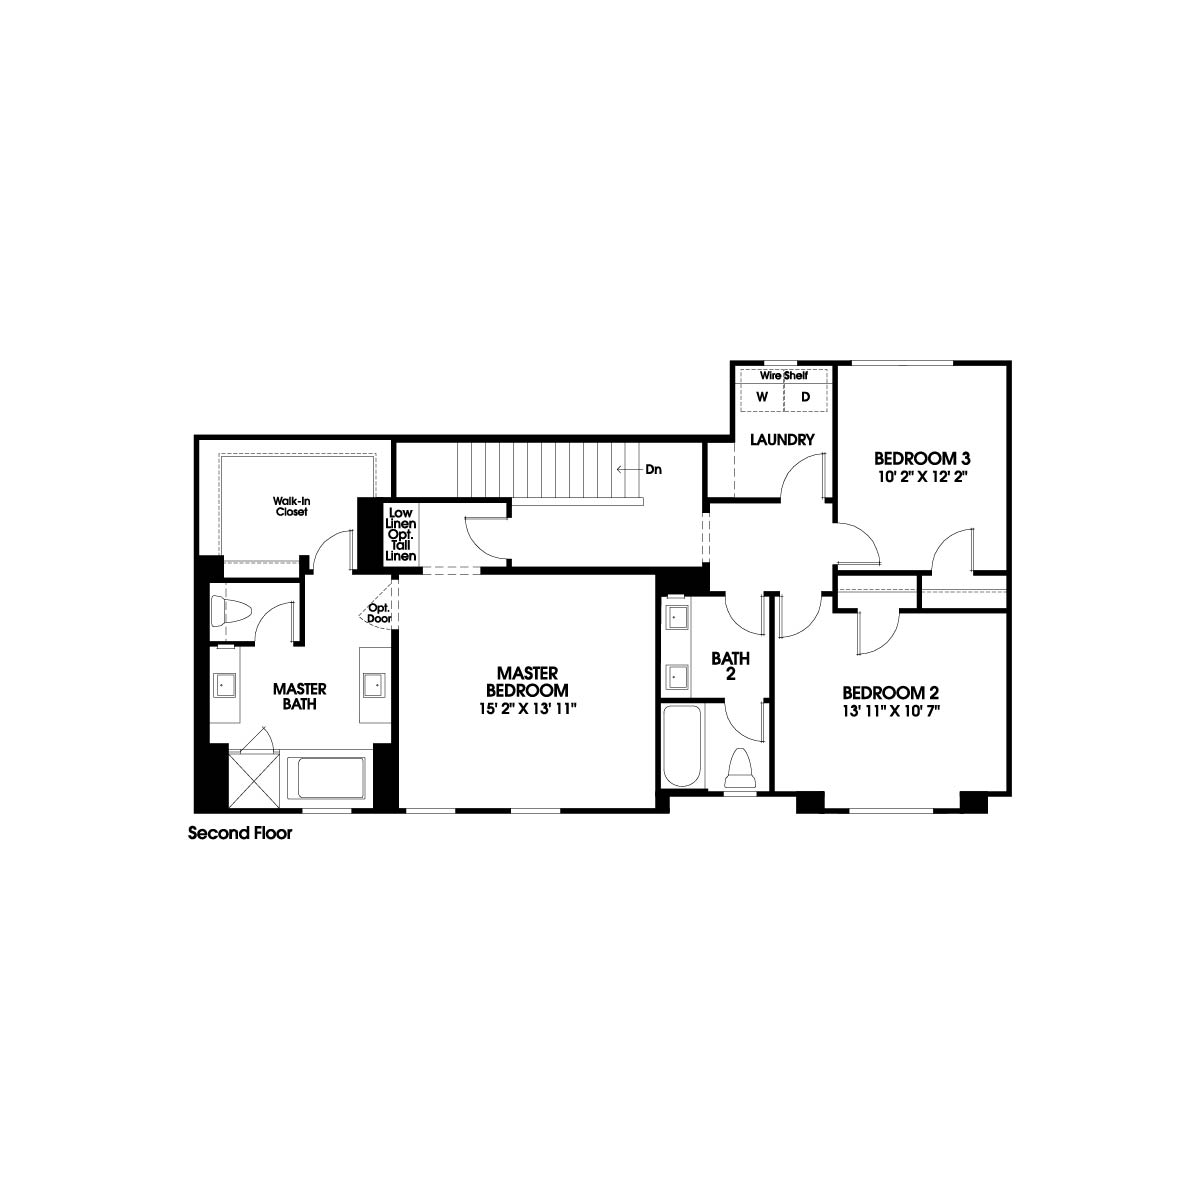 Second floor residence 5 floor plan | Holiday at New Haven in Ontario Ranch, CA | Brookfield Residential